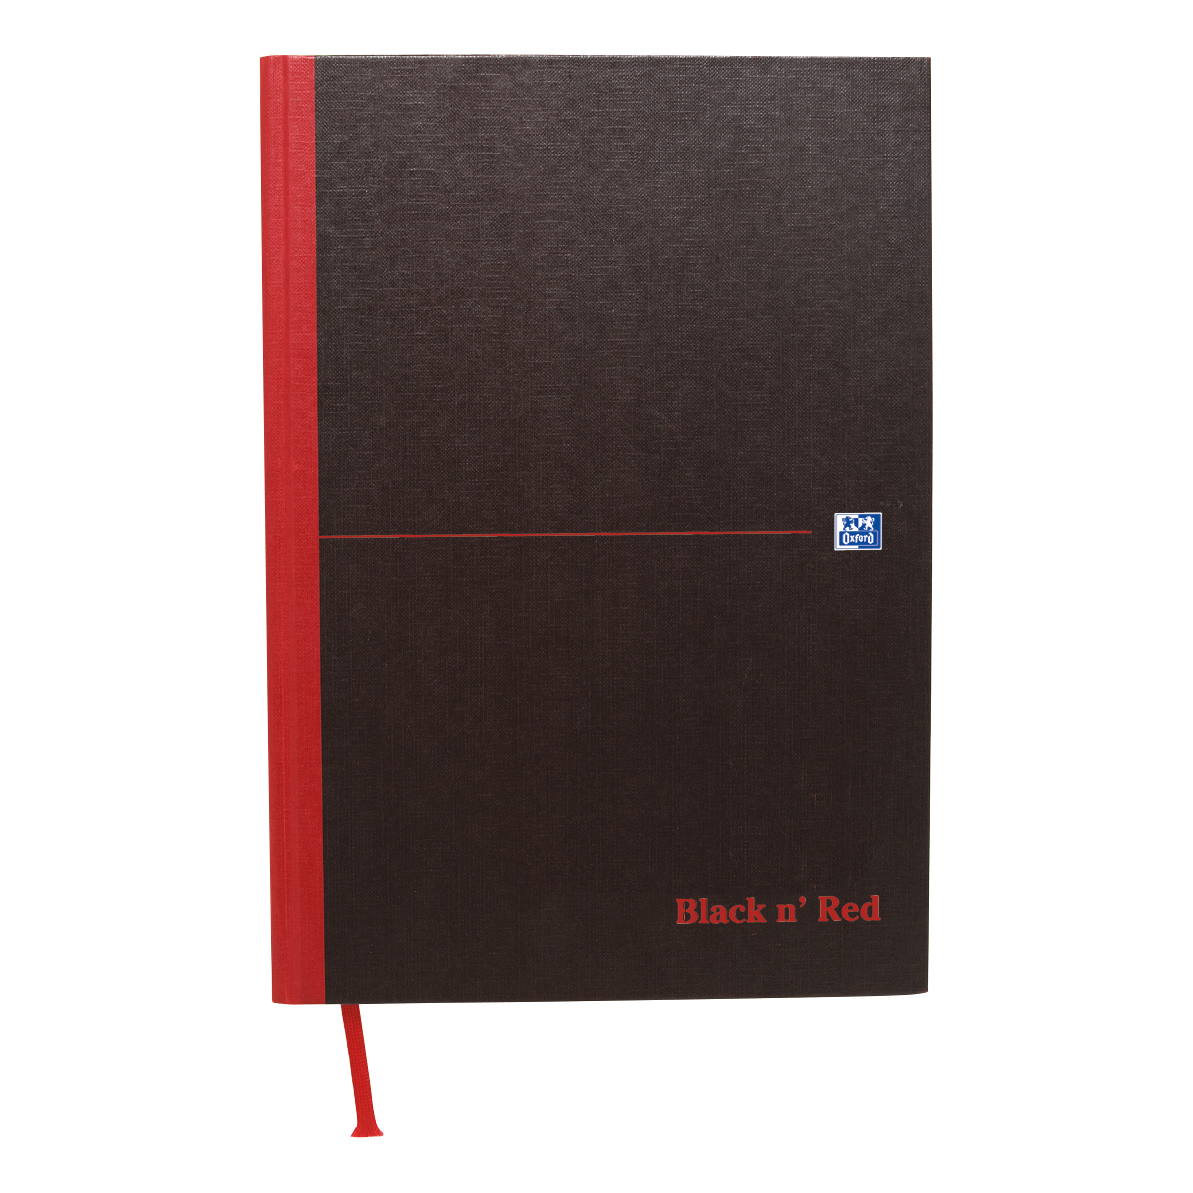 Notebooks Black n Red Notebook Casebound 90gsm Smart Ruled 96pp A4 Ref 100080428